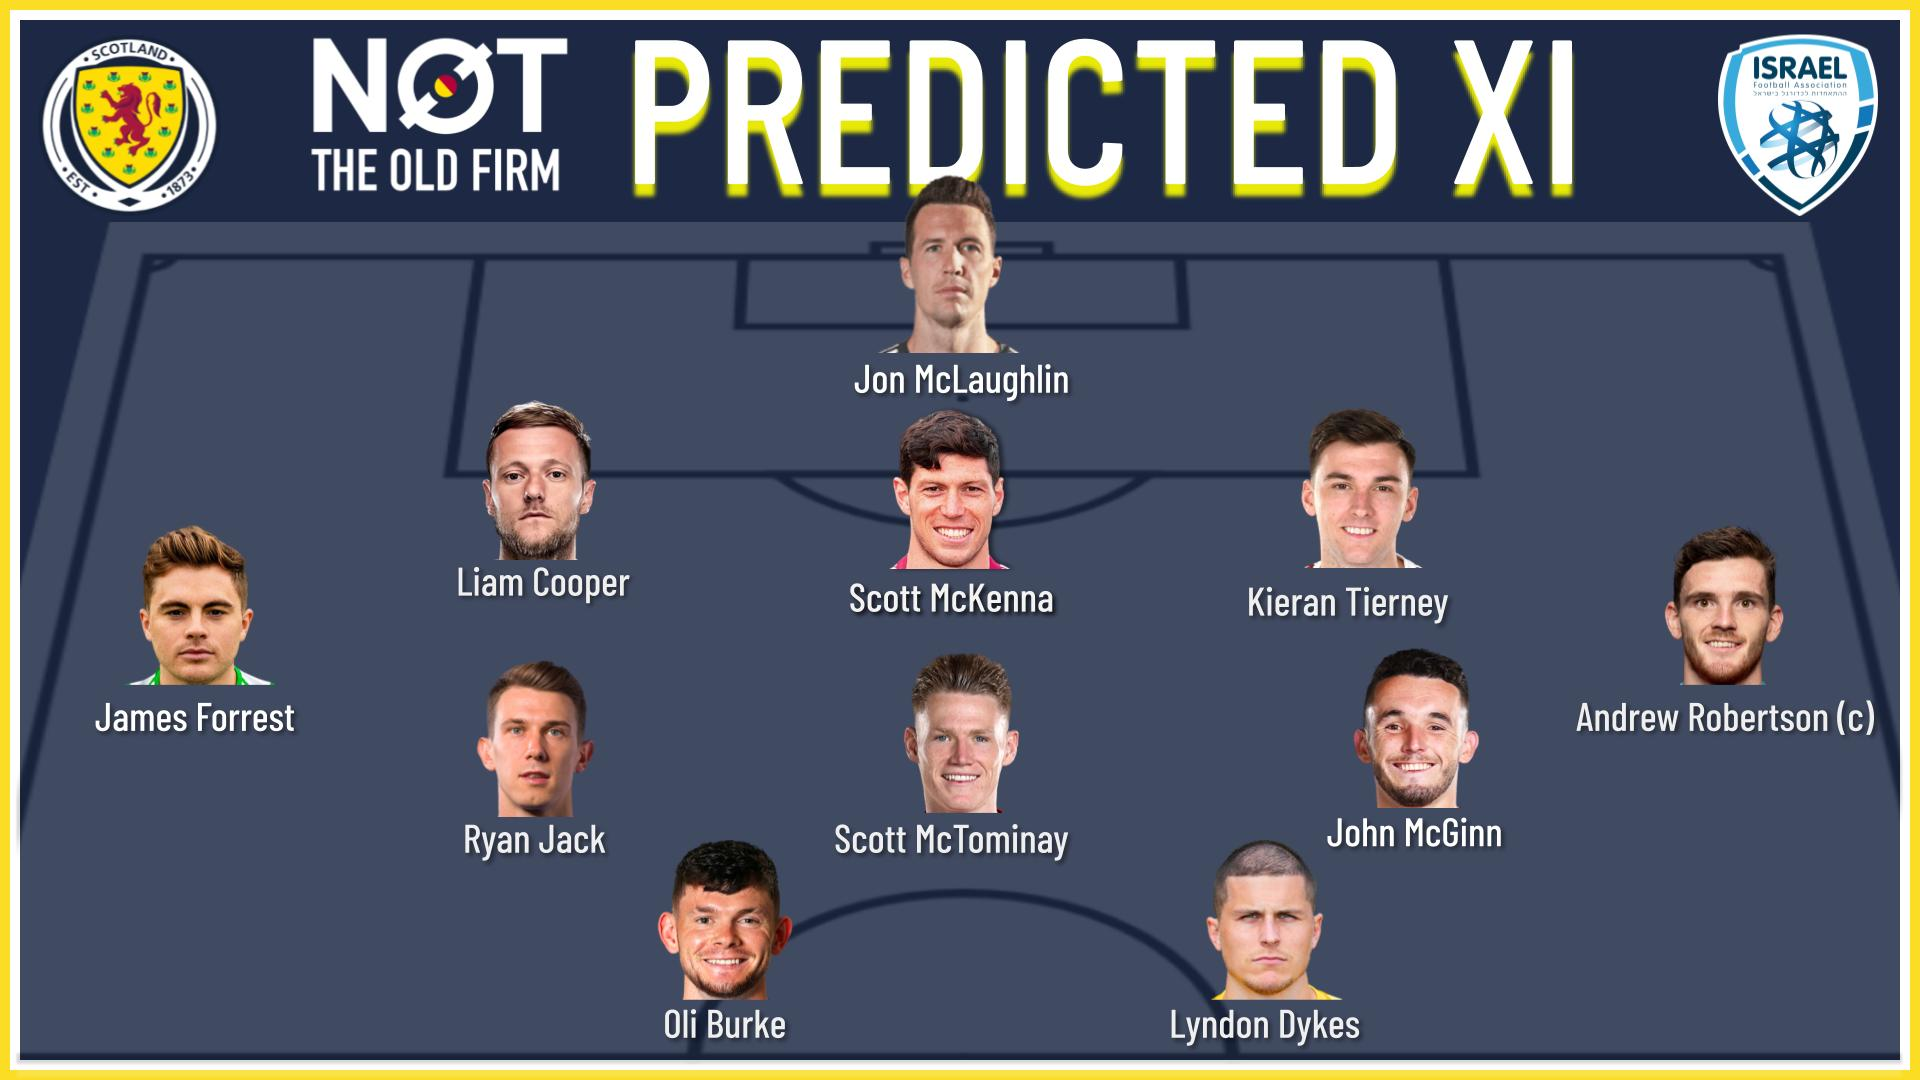 NTOF's predicted XI Scotland v Israel